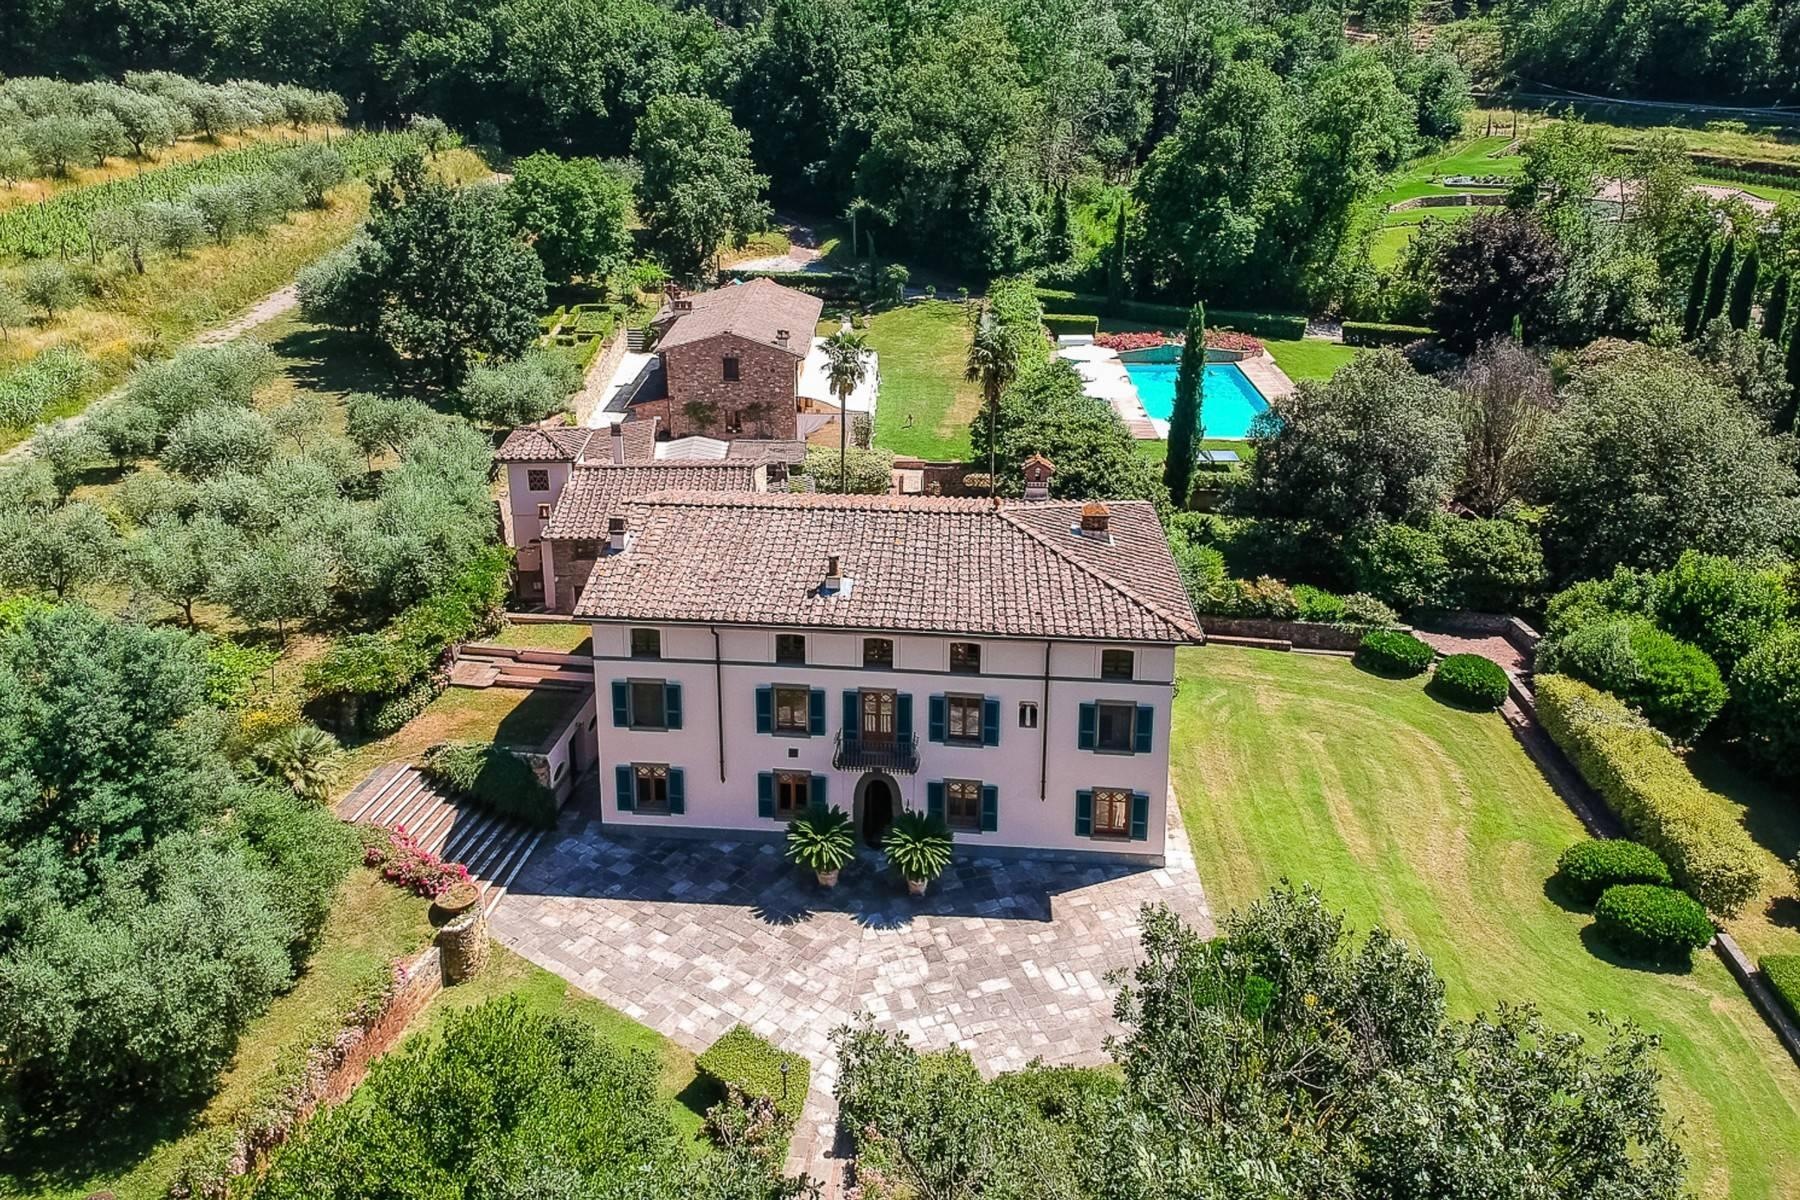 Majestic Luxury Villa with outbuildings on the hills south of Lucca - 1